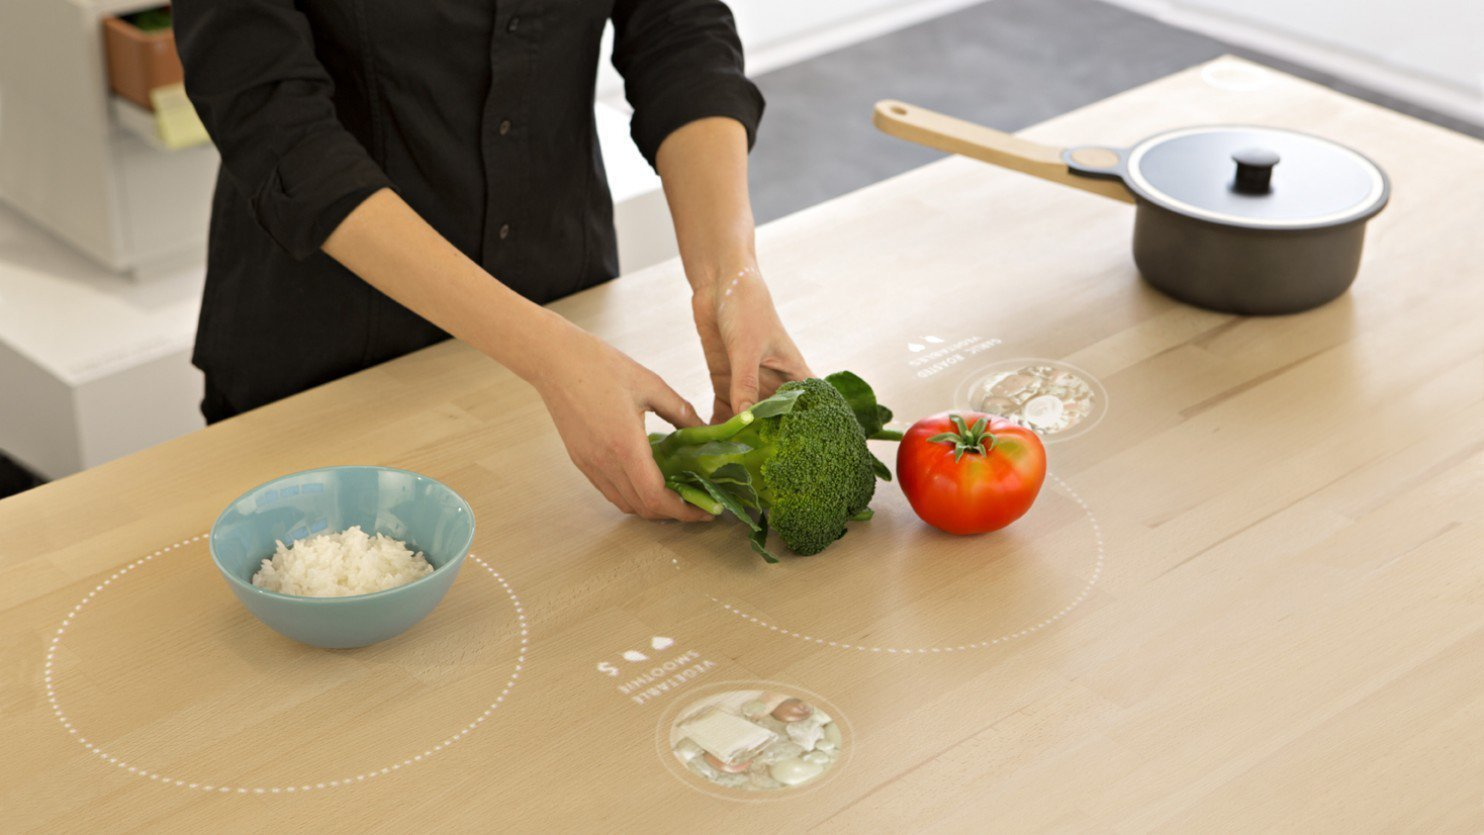 IKEA's gorgeous vision of the future kitchen is a big lie